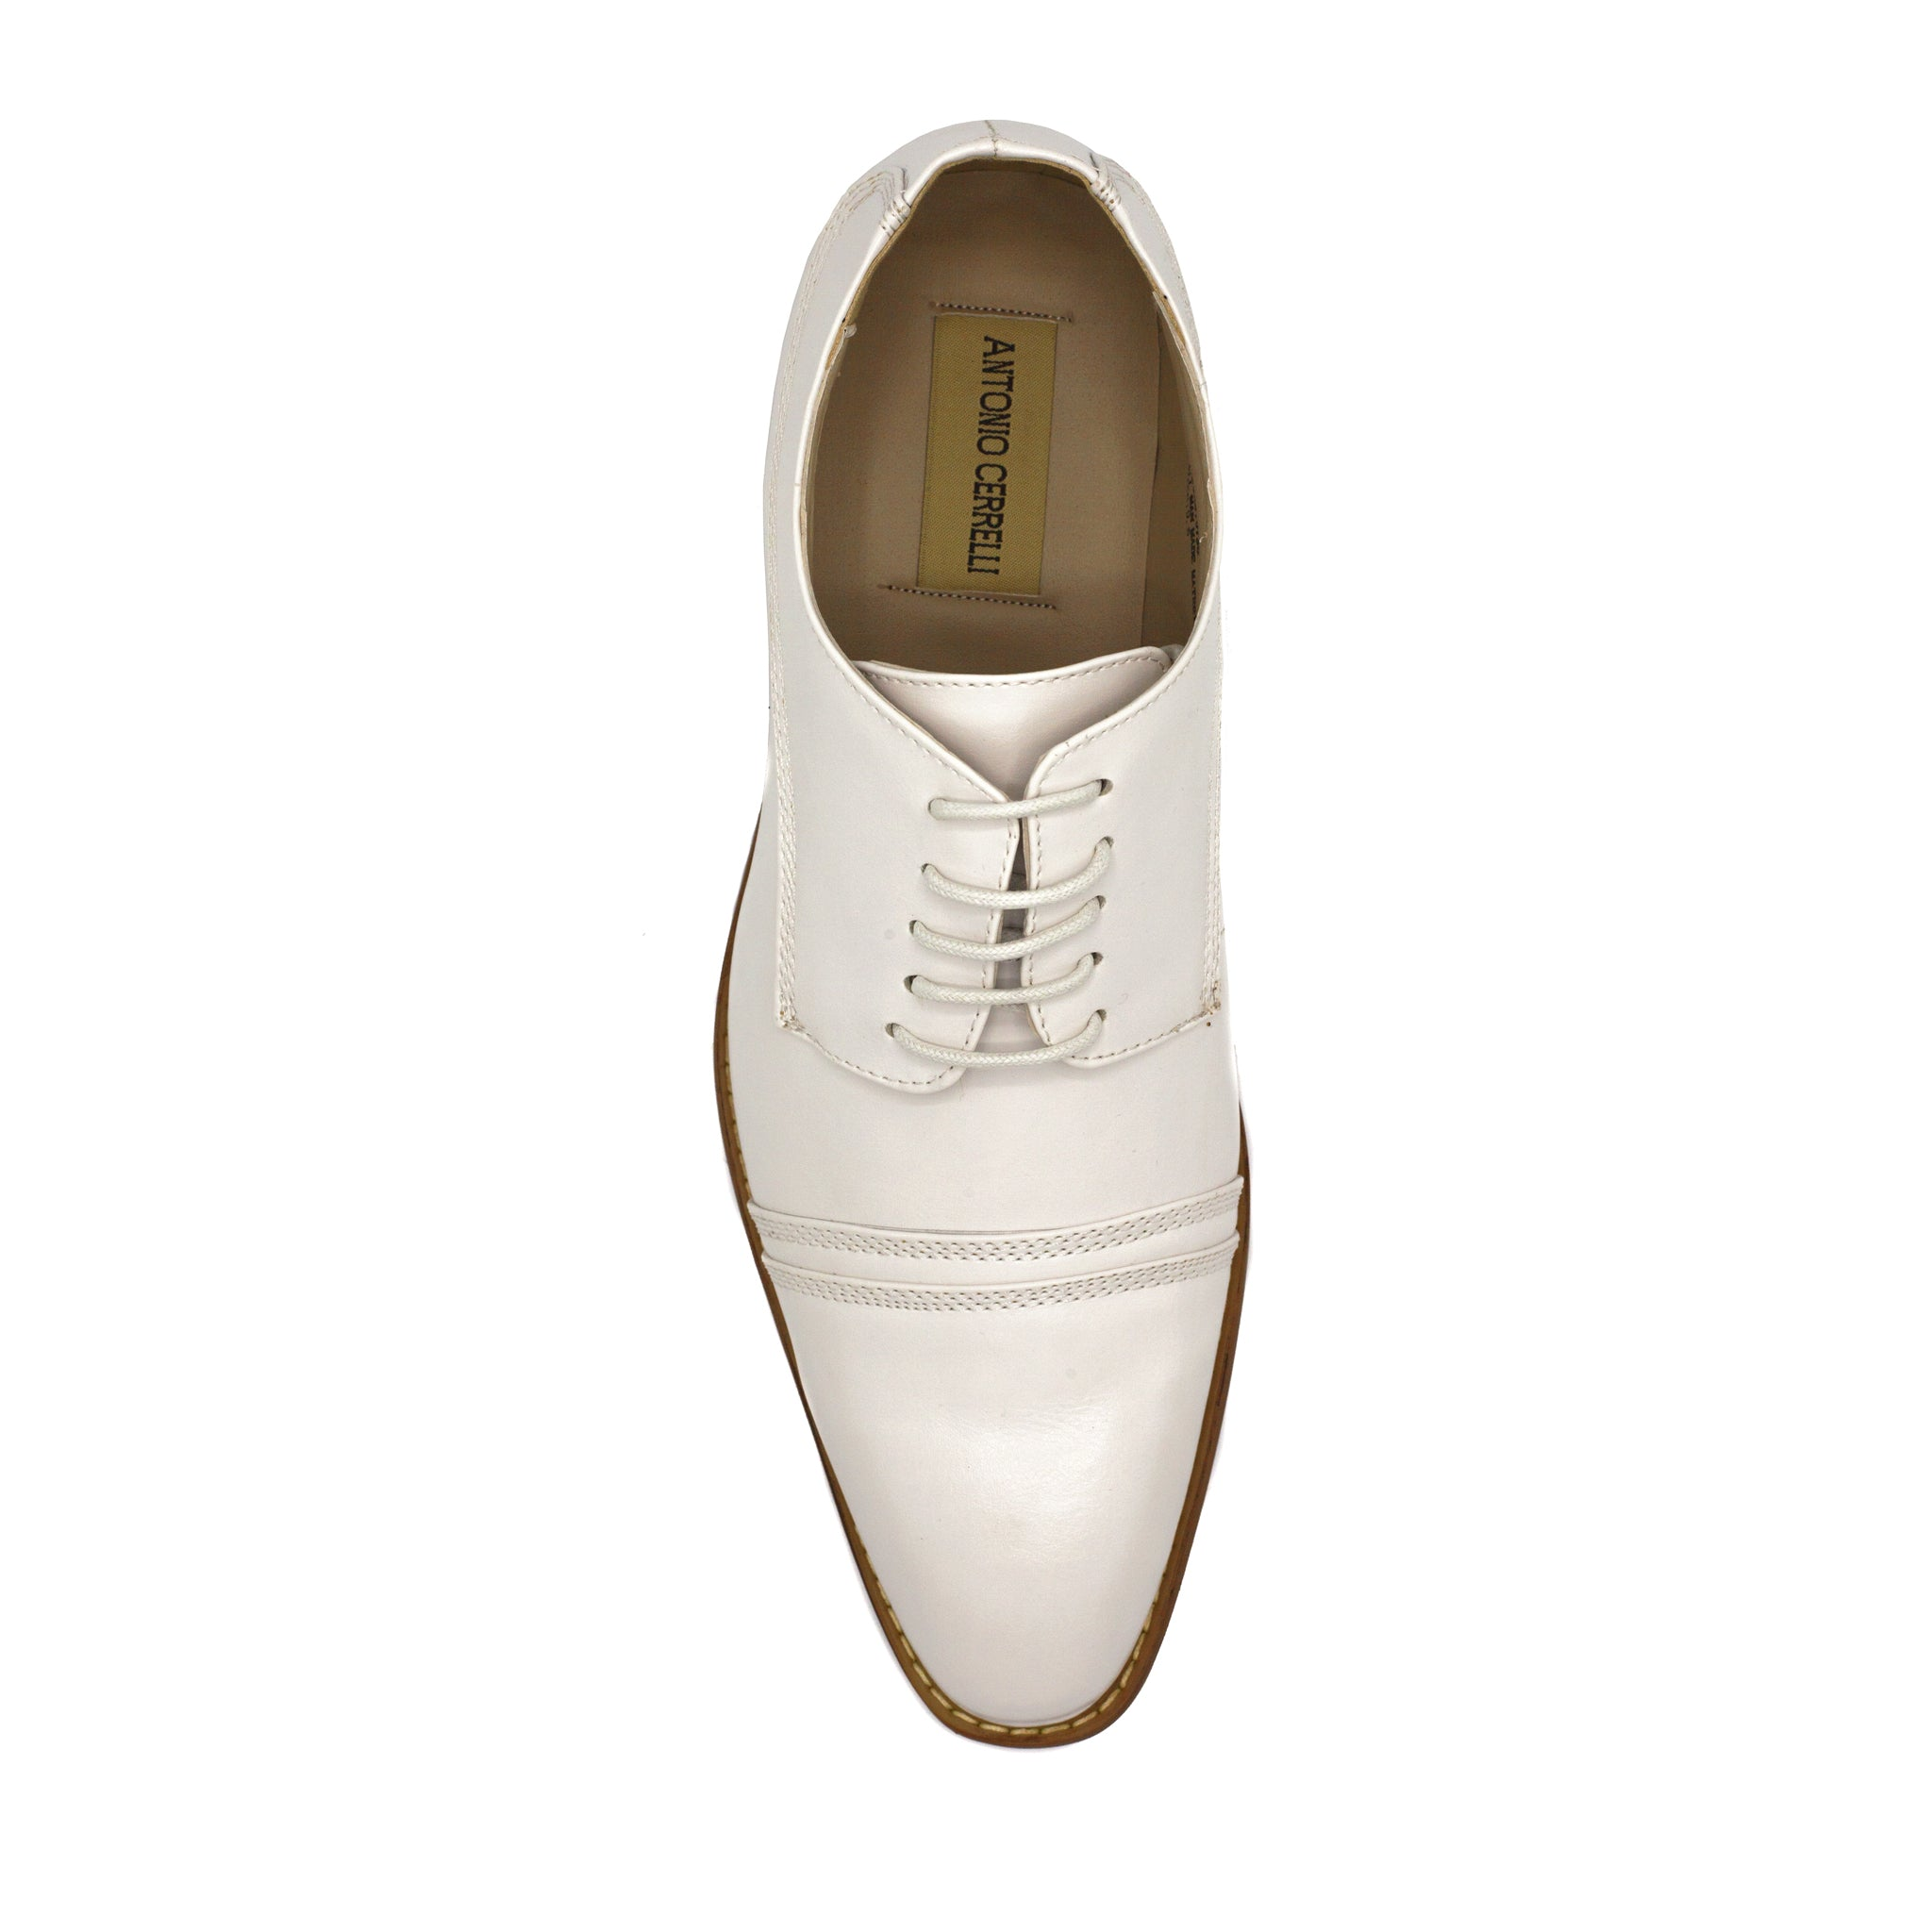 ANTONIO CERRELLI WHITE DRESS SHOES